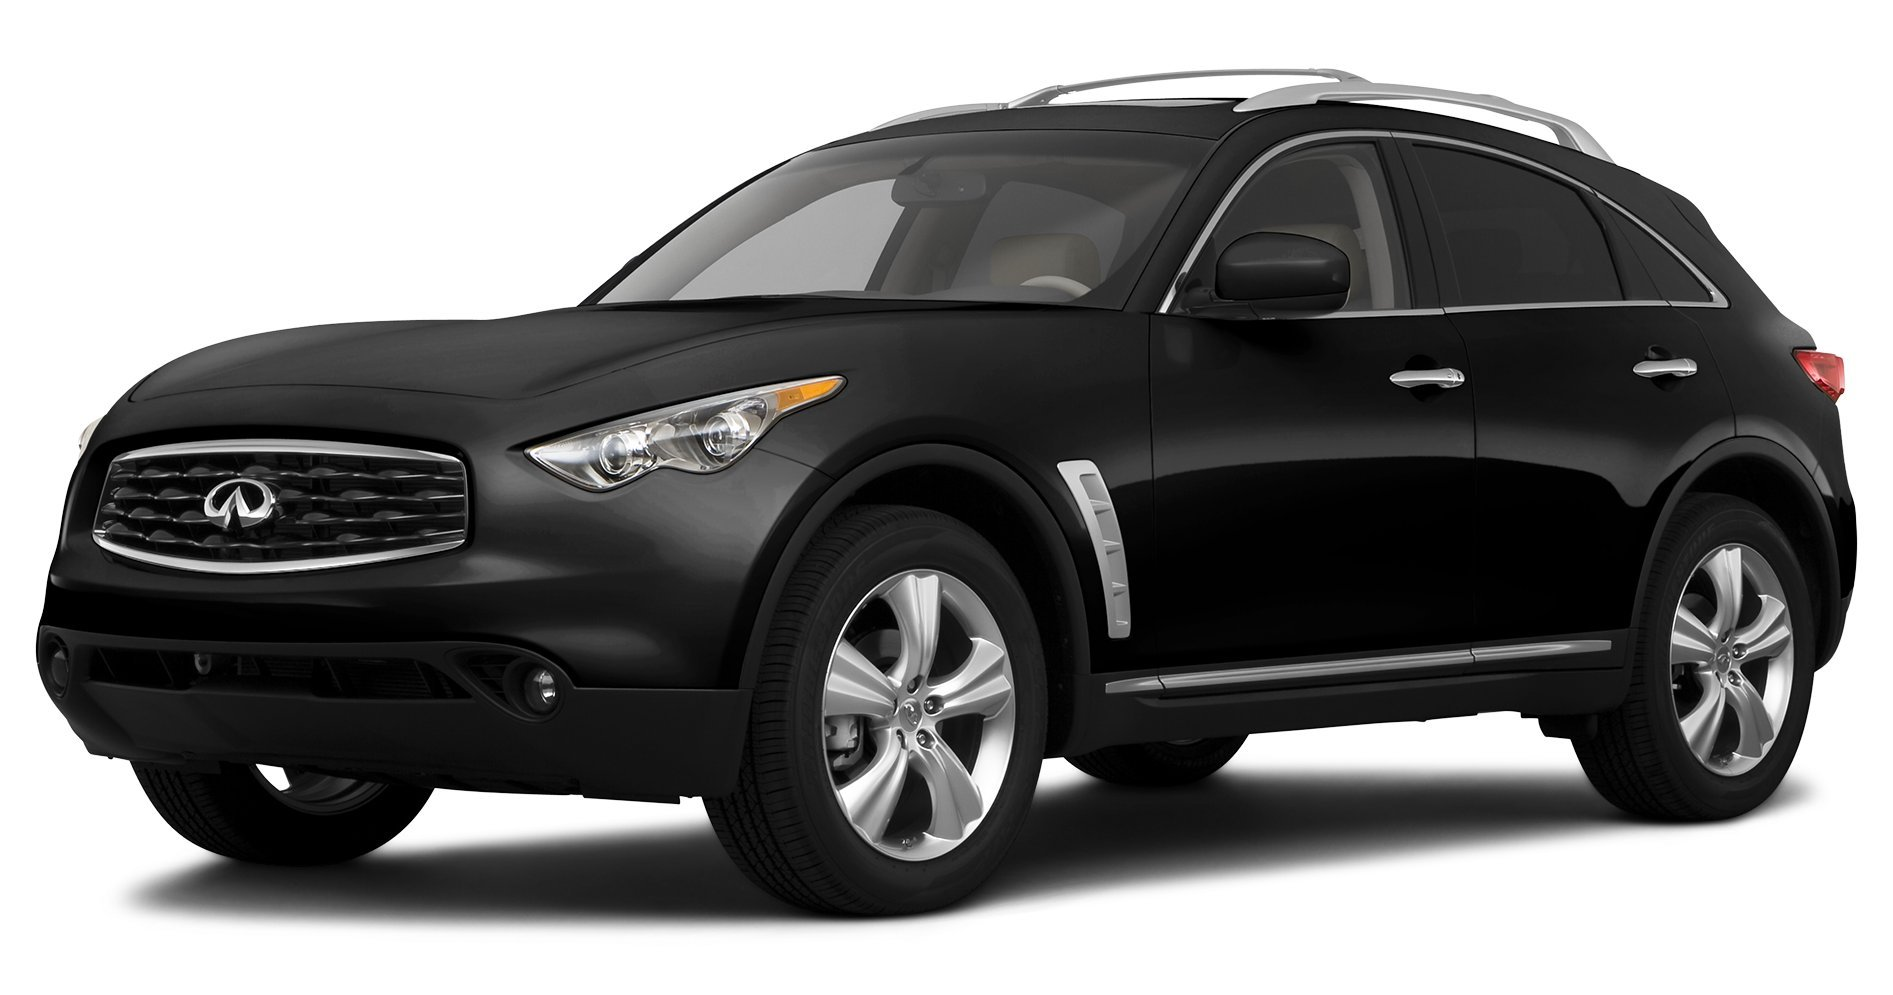 Amazon 2010 infiniti fx35 reviews images and specs vehicles 2010 infiniti fx35 all wheel drive 4 door vanachro Image collections